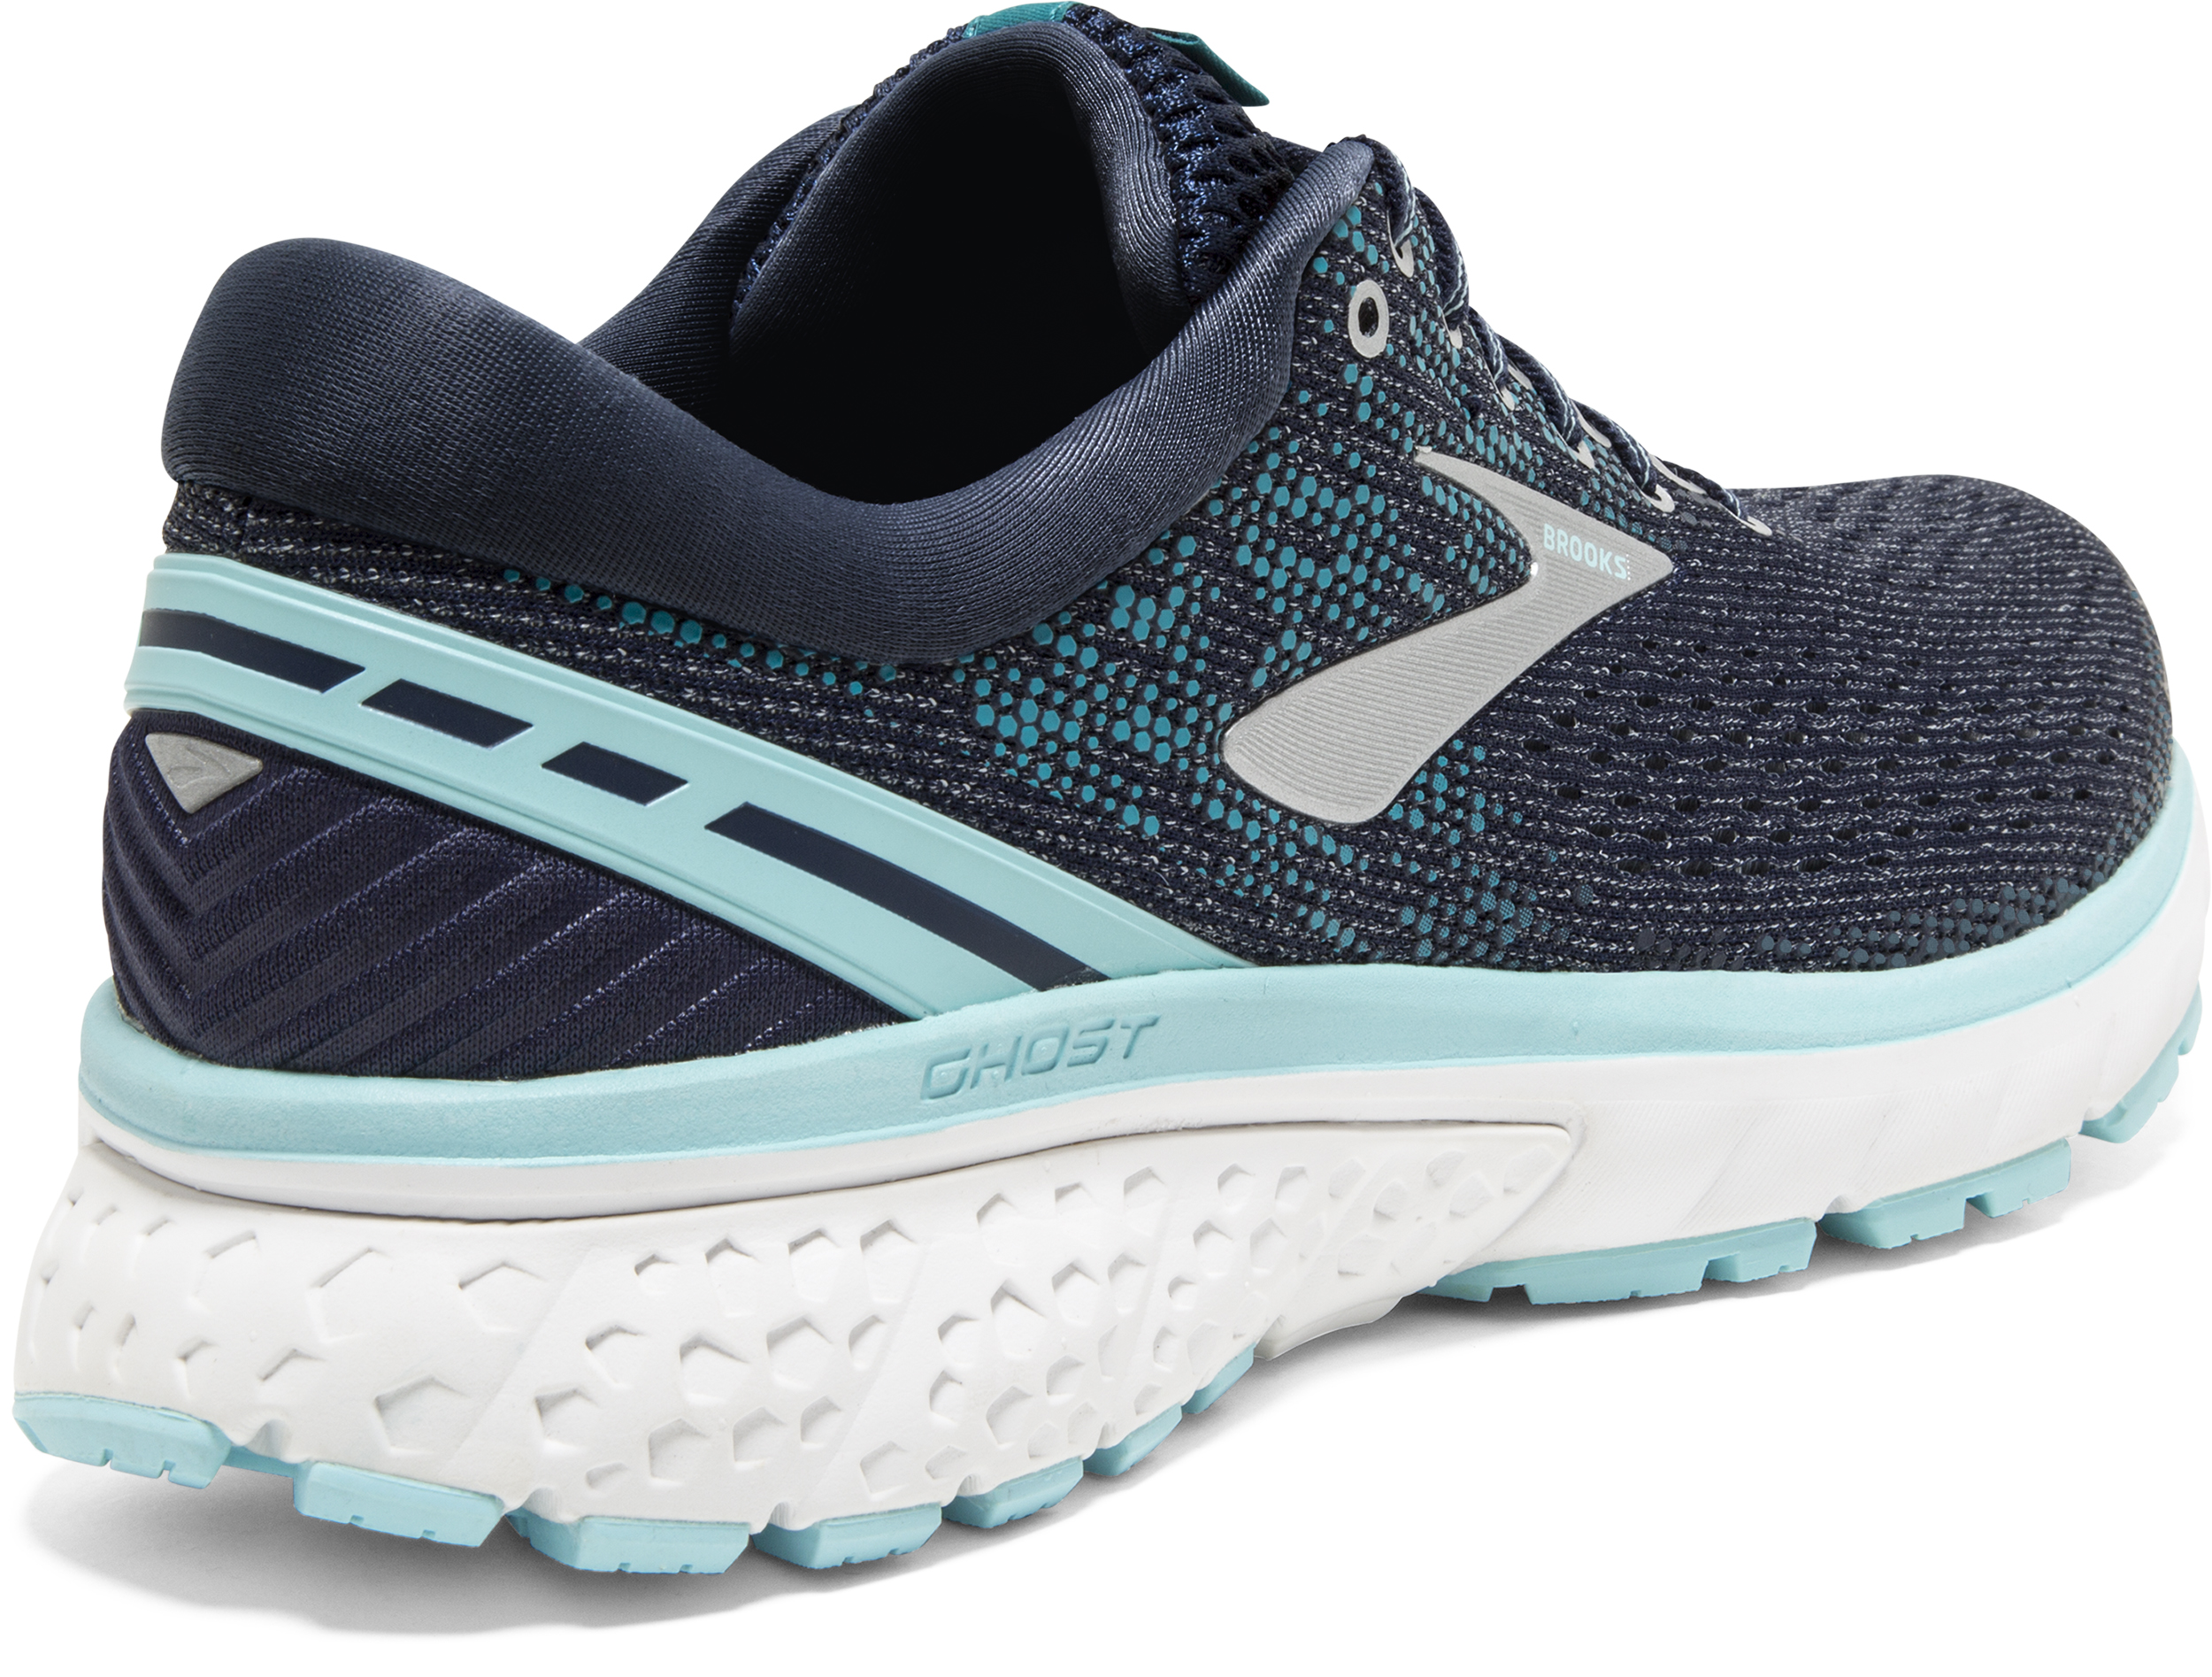 50d09787ec8 Brooks Ghost 11 Road Running Shoes - Women s